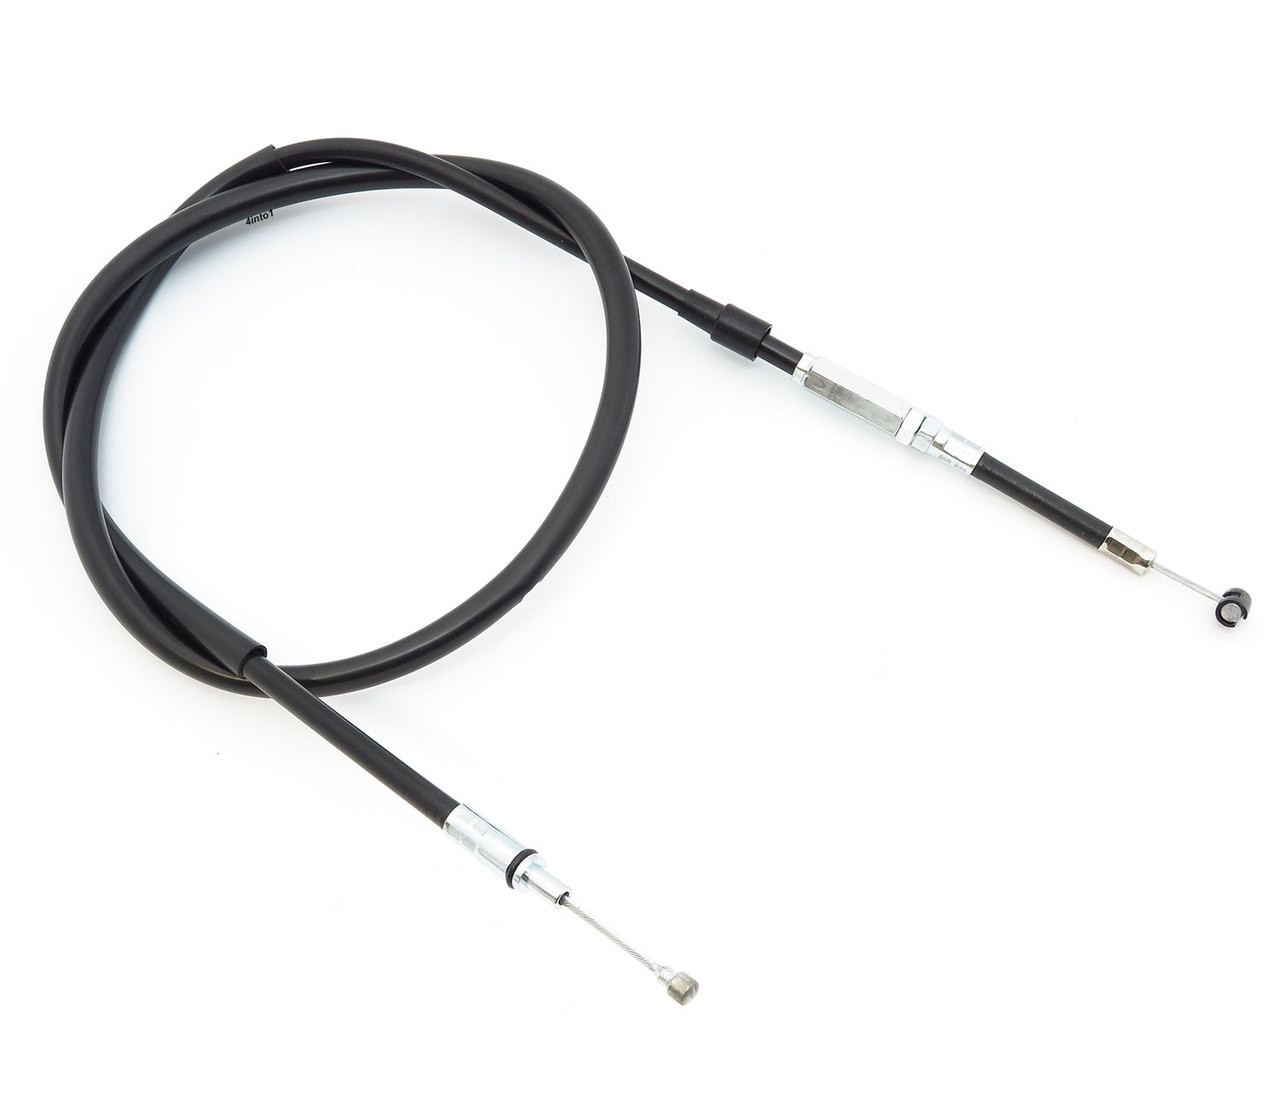 Motion Pro Clutch Cable Replacement NEW Honda CR500R 1984-2001 CR250R 1984-1996